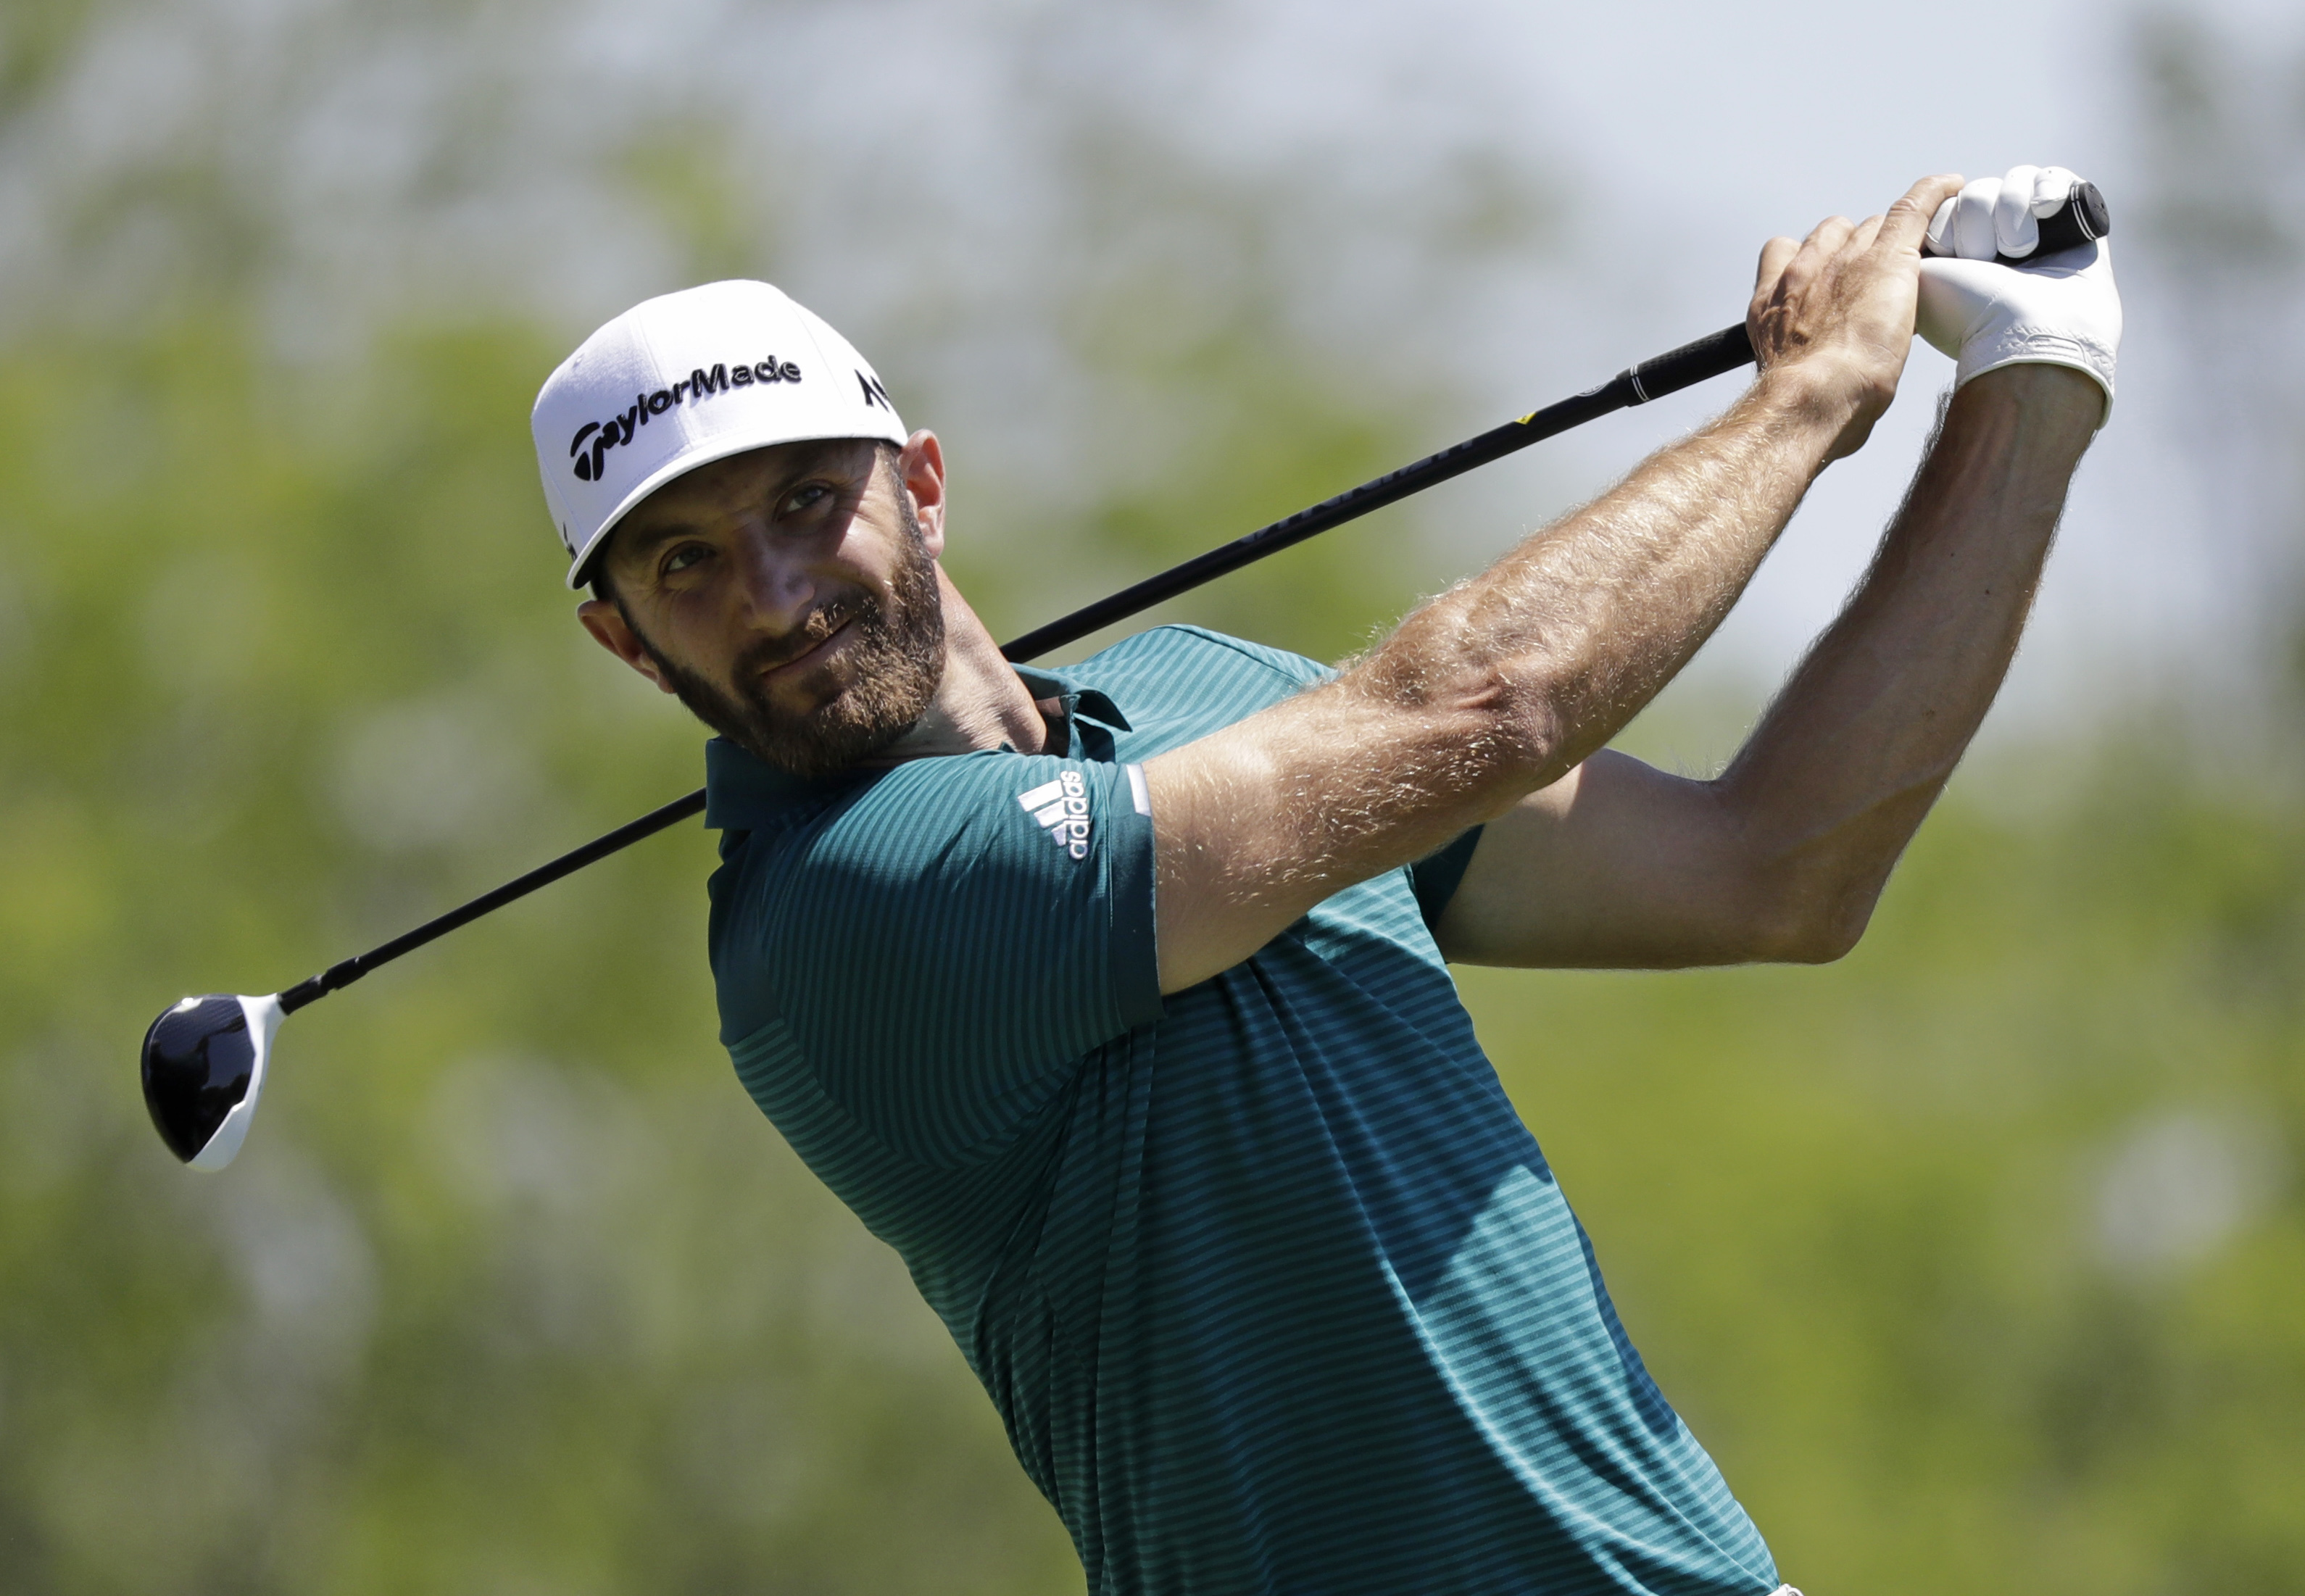 Dustin Johnson tees off on the fifth hole during the second round of the Memorial golf tournament, Friday, June 2, 2017, in Dublin, Ohio. (AP Photo/Darron Cummings)